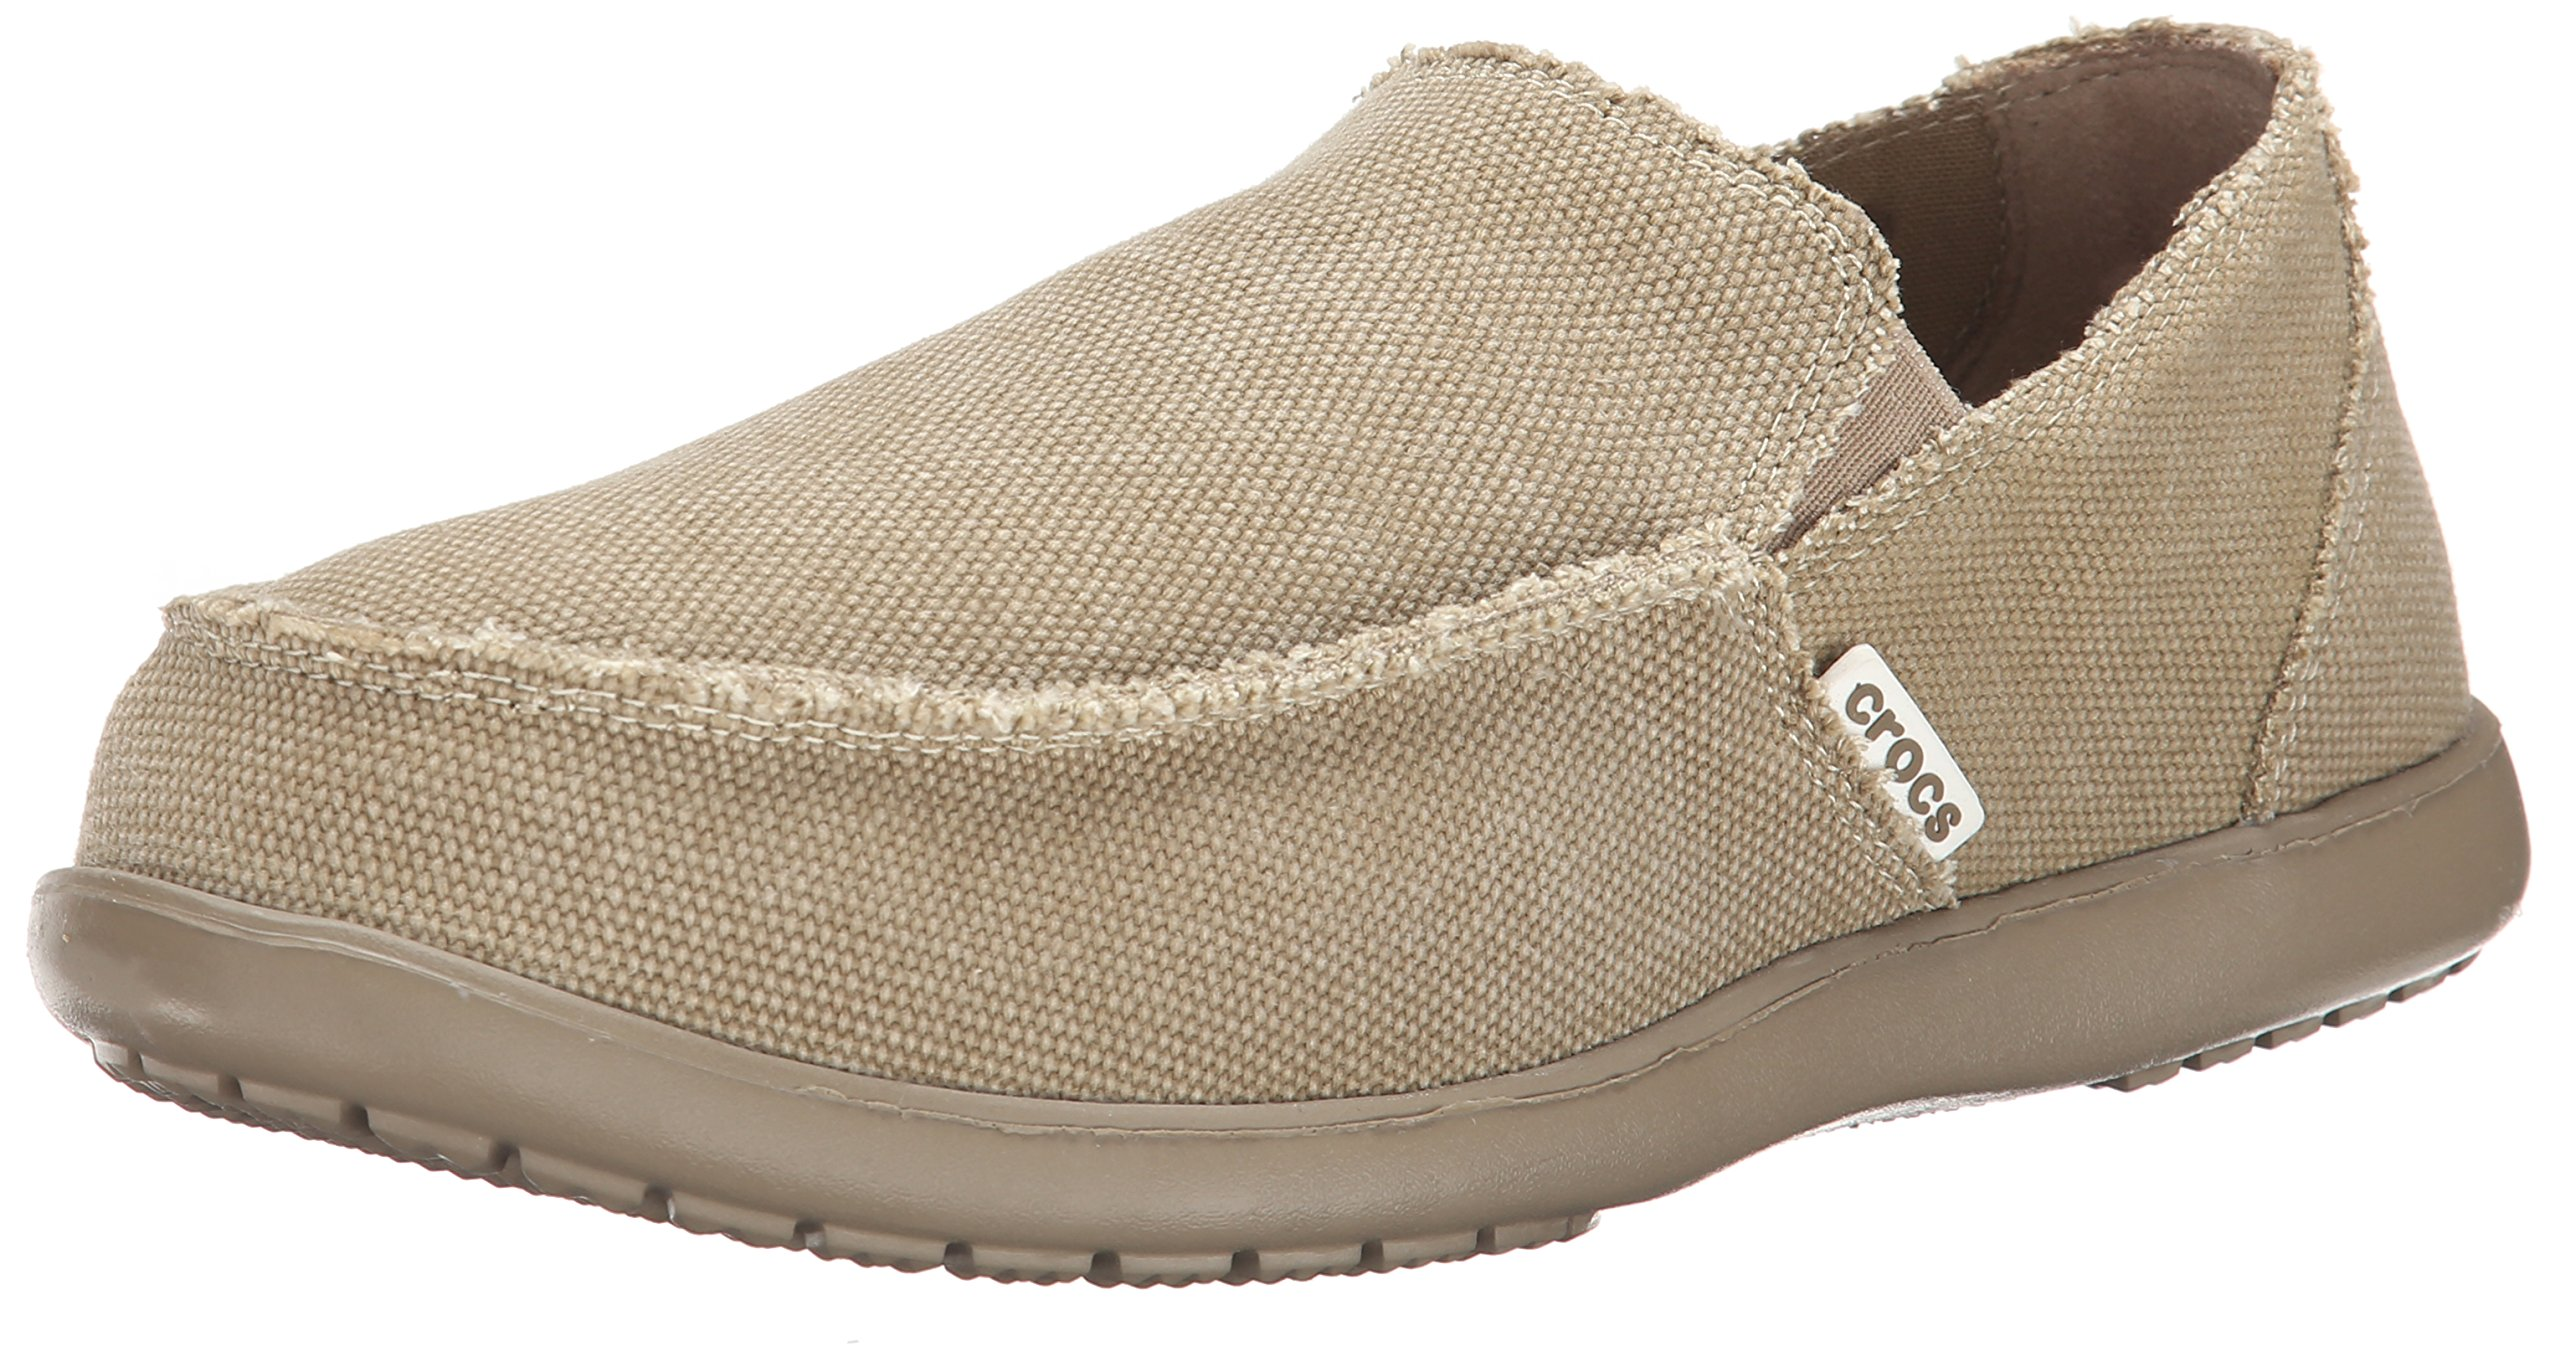 Crocs Men's Santa Cruz Slip-On Loafer,Khaki/Khaki,13 (D) M US by Crocs